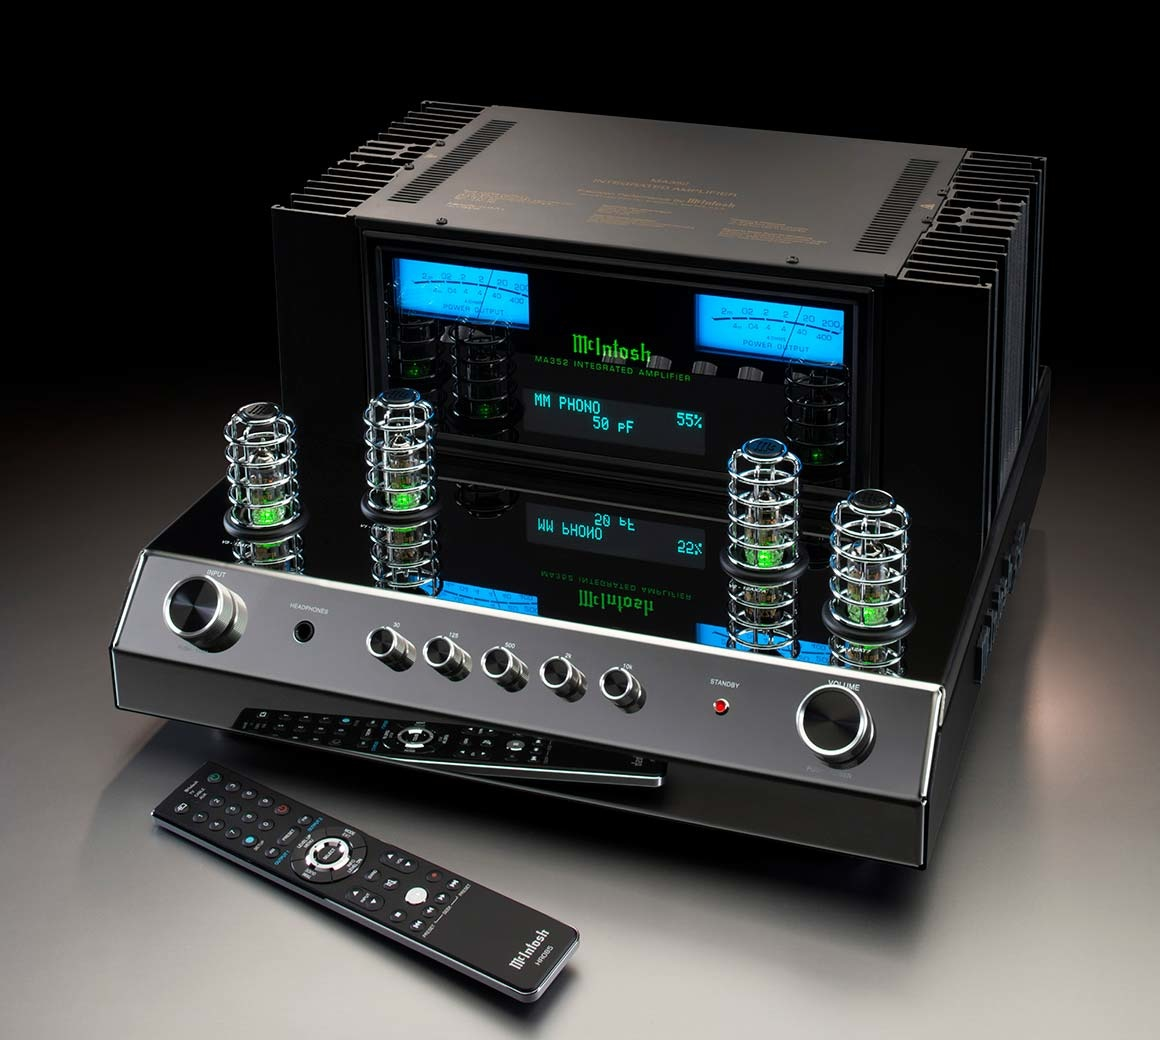 MA352 Hybrid Integrated Amplifier (Showroom Demo in Mint Condition)